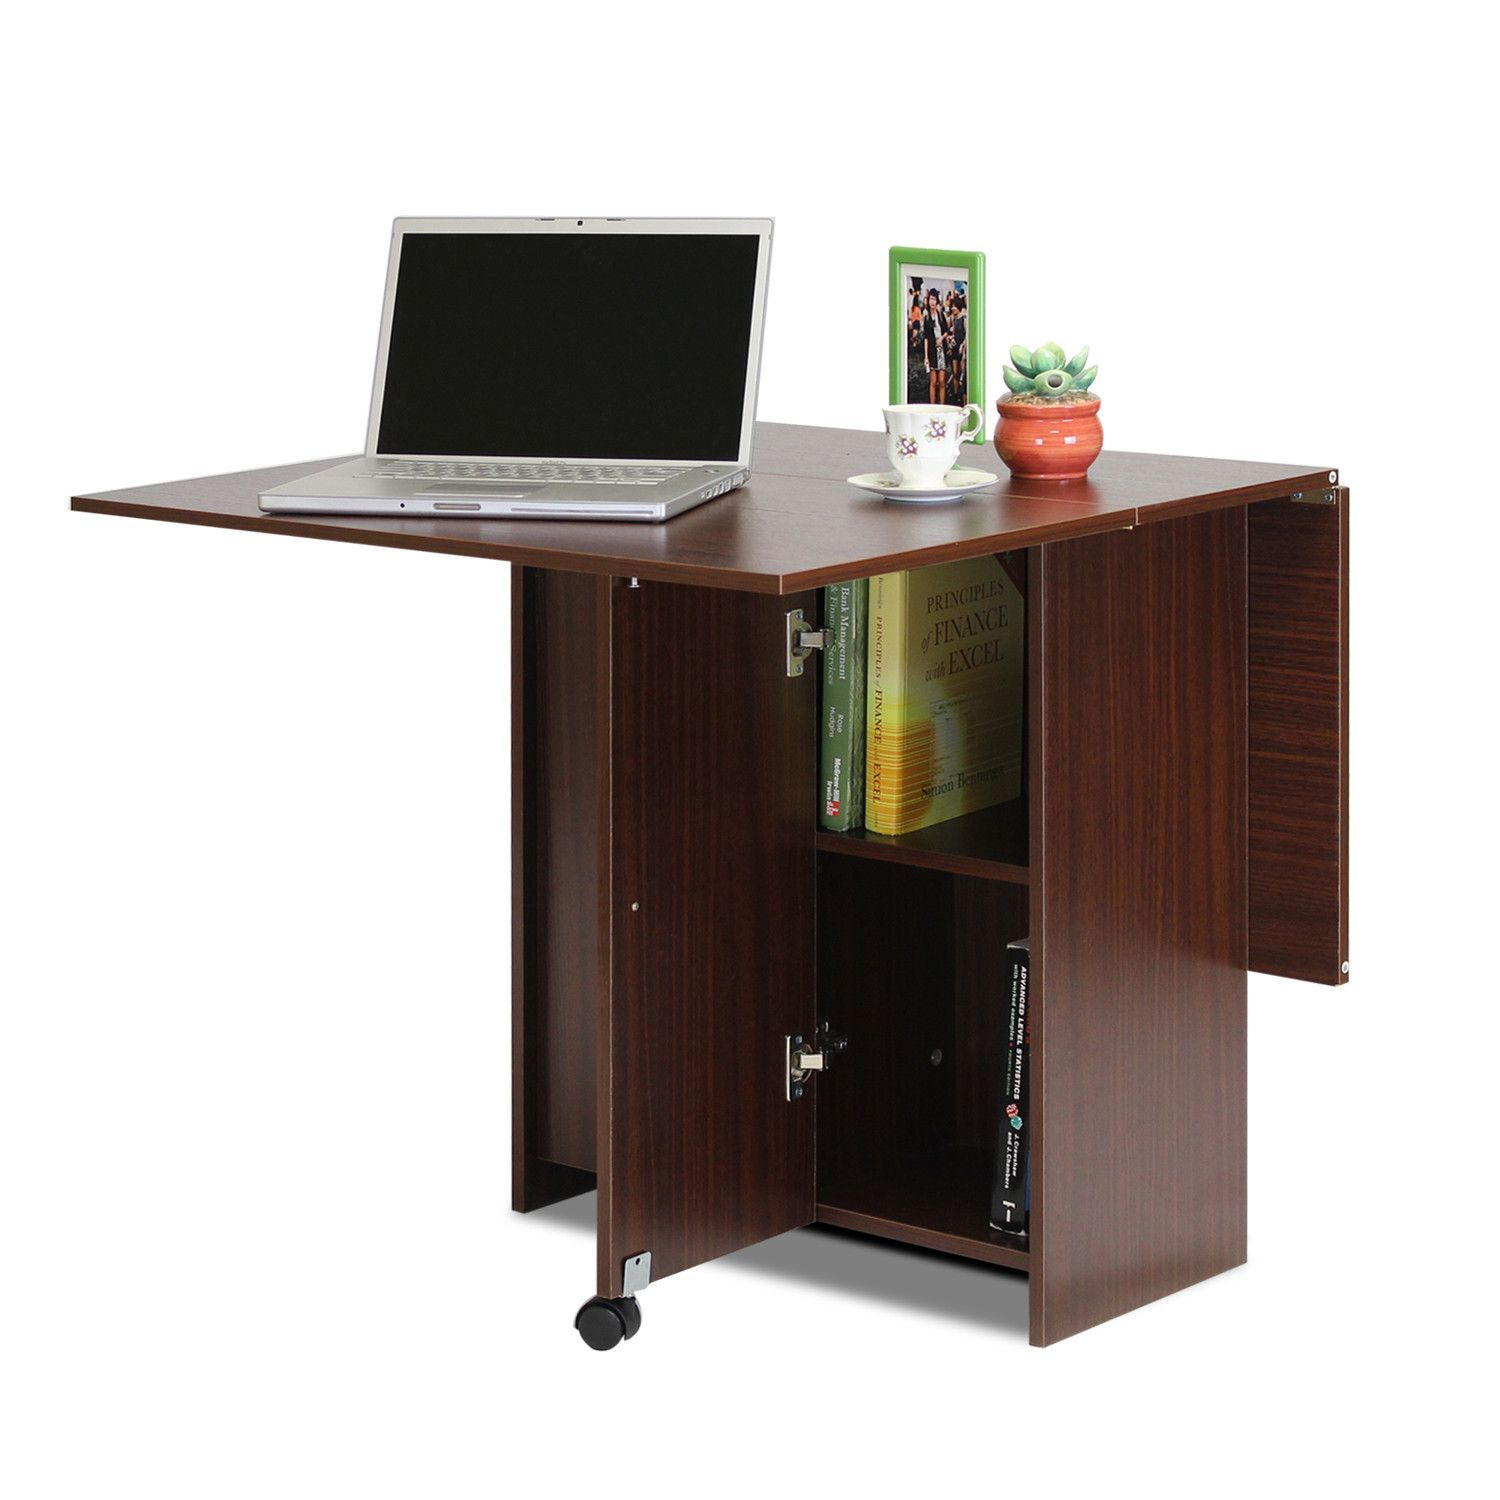 Boyate Folding Multifunction Table Walnut FNAJ